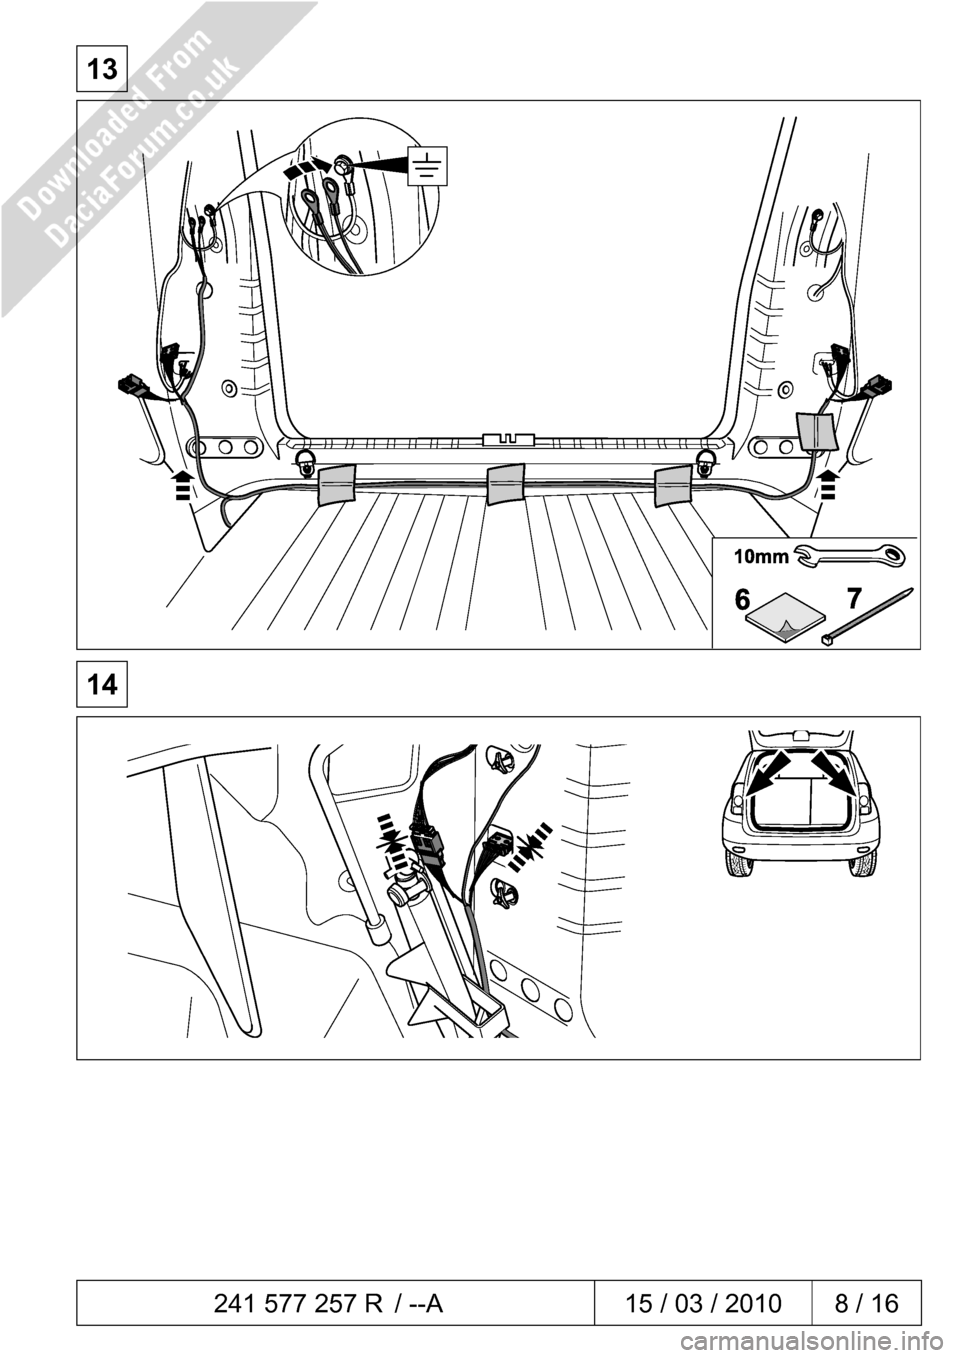 DACIA DUSTER 2010 1.G 13 Pin Towbar Fitting Guide Workshop Manual, Page 8